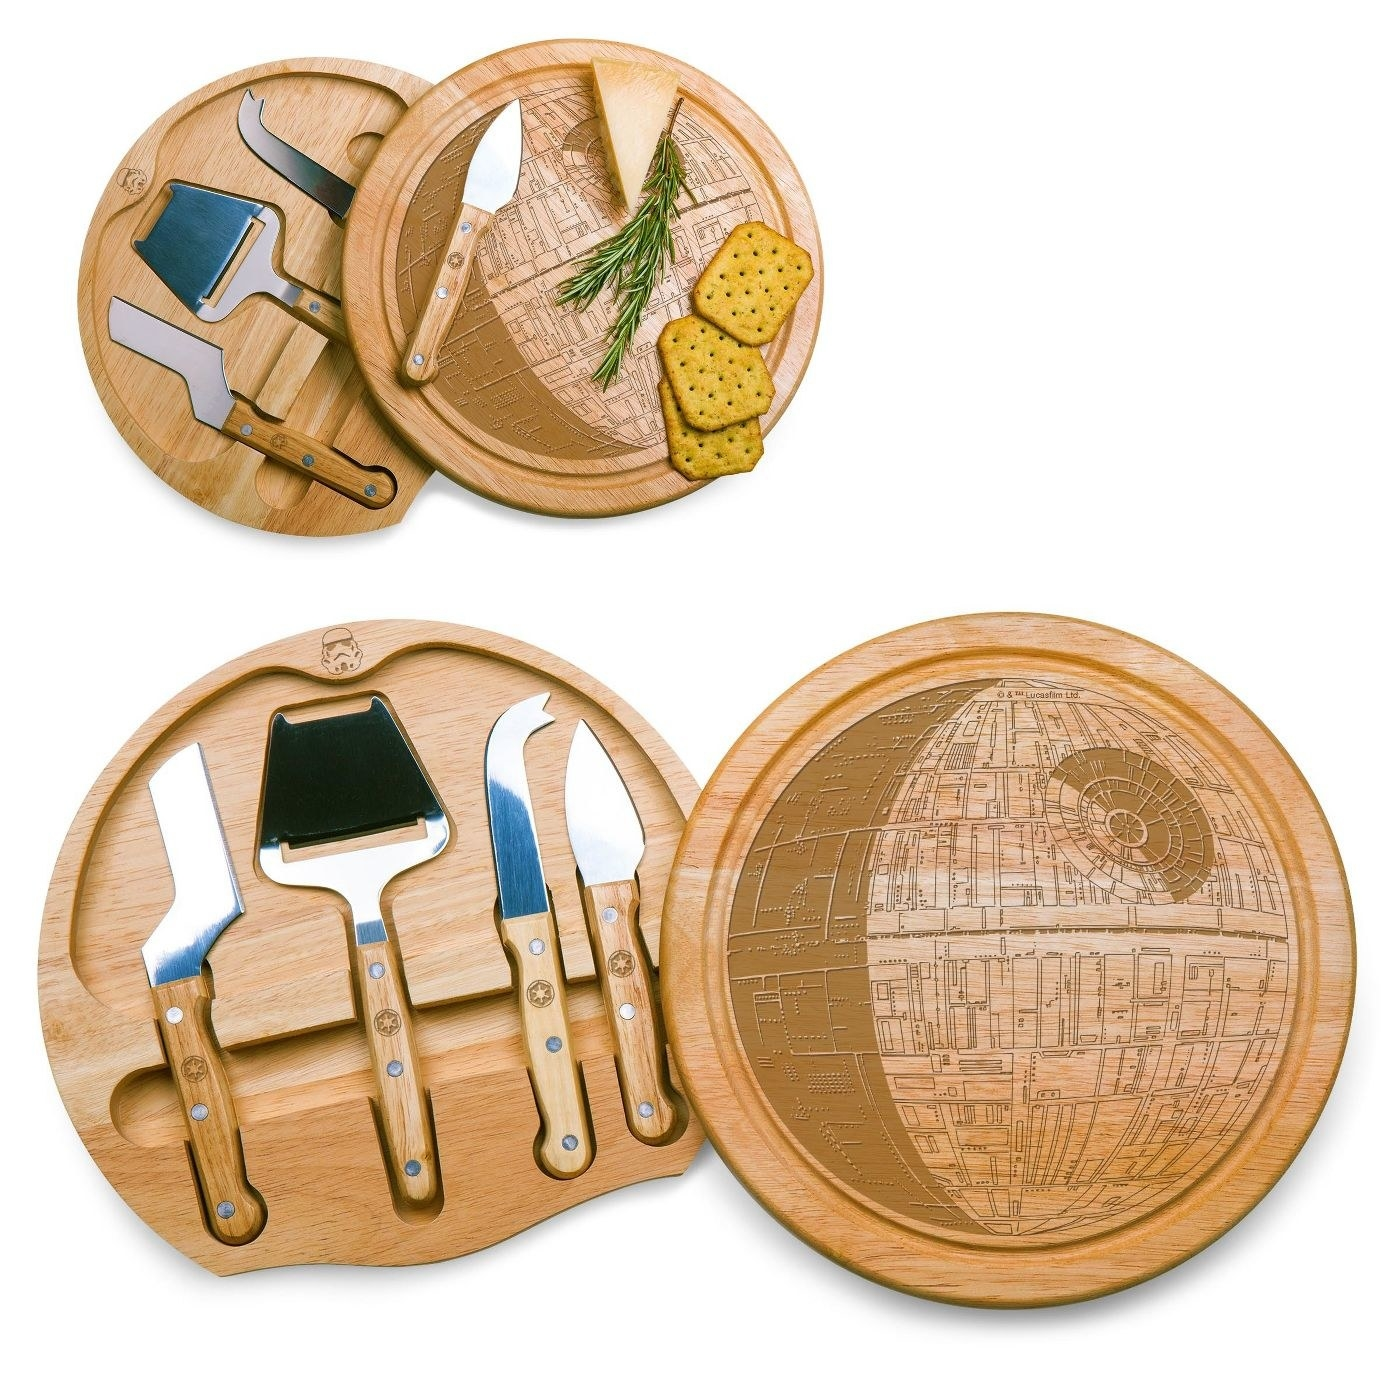 The cutting board, which is round, wood-colored, has an image of the Death Star cut into the top, and holds four cheese knives inside it